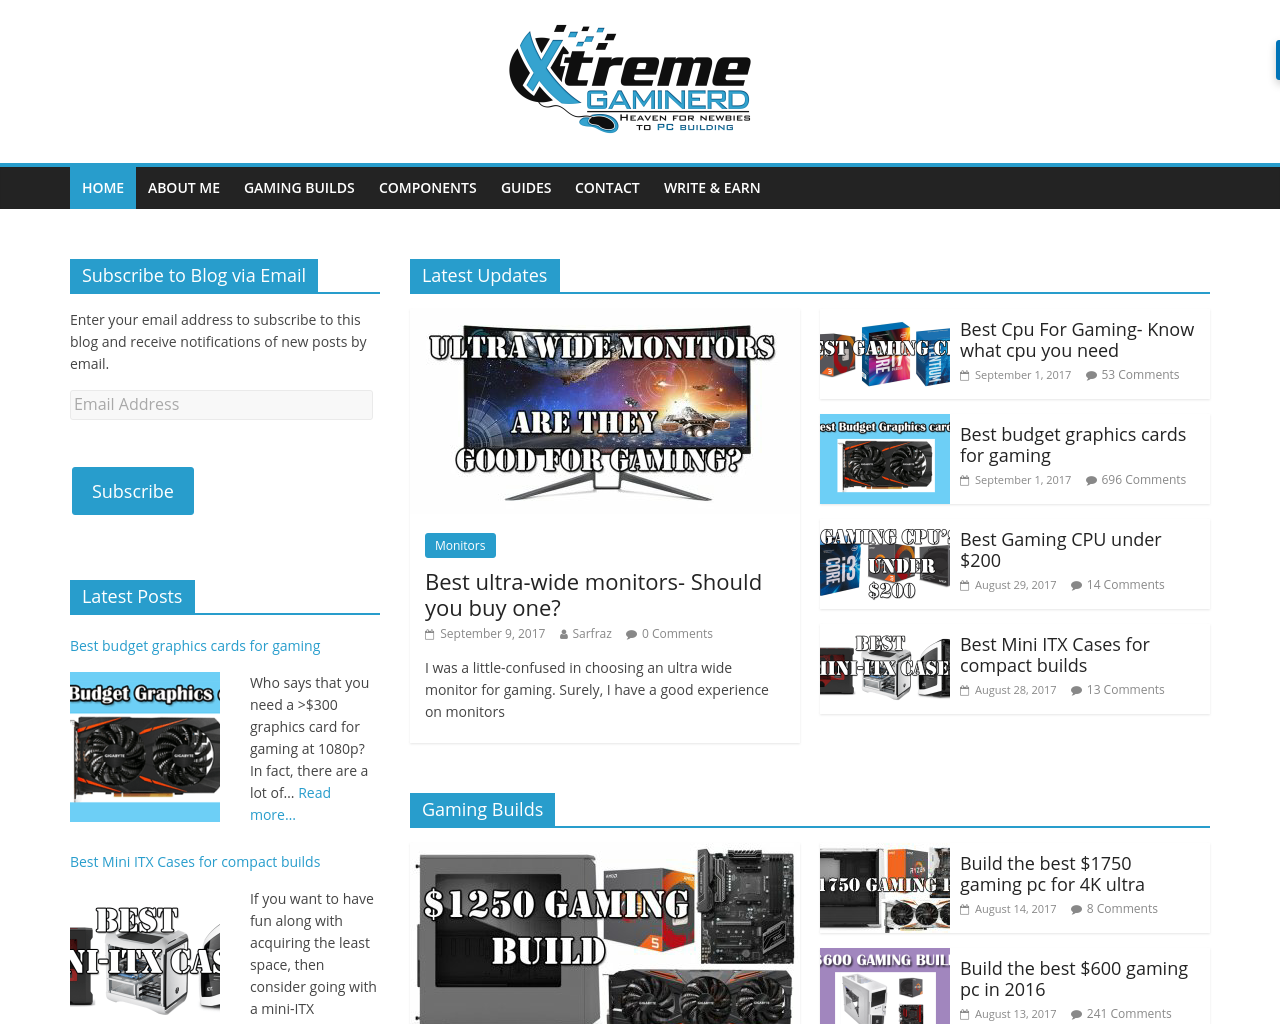 Xtreme-Gaminerd-Advertising-Reviews-Pricing